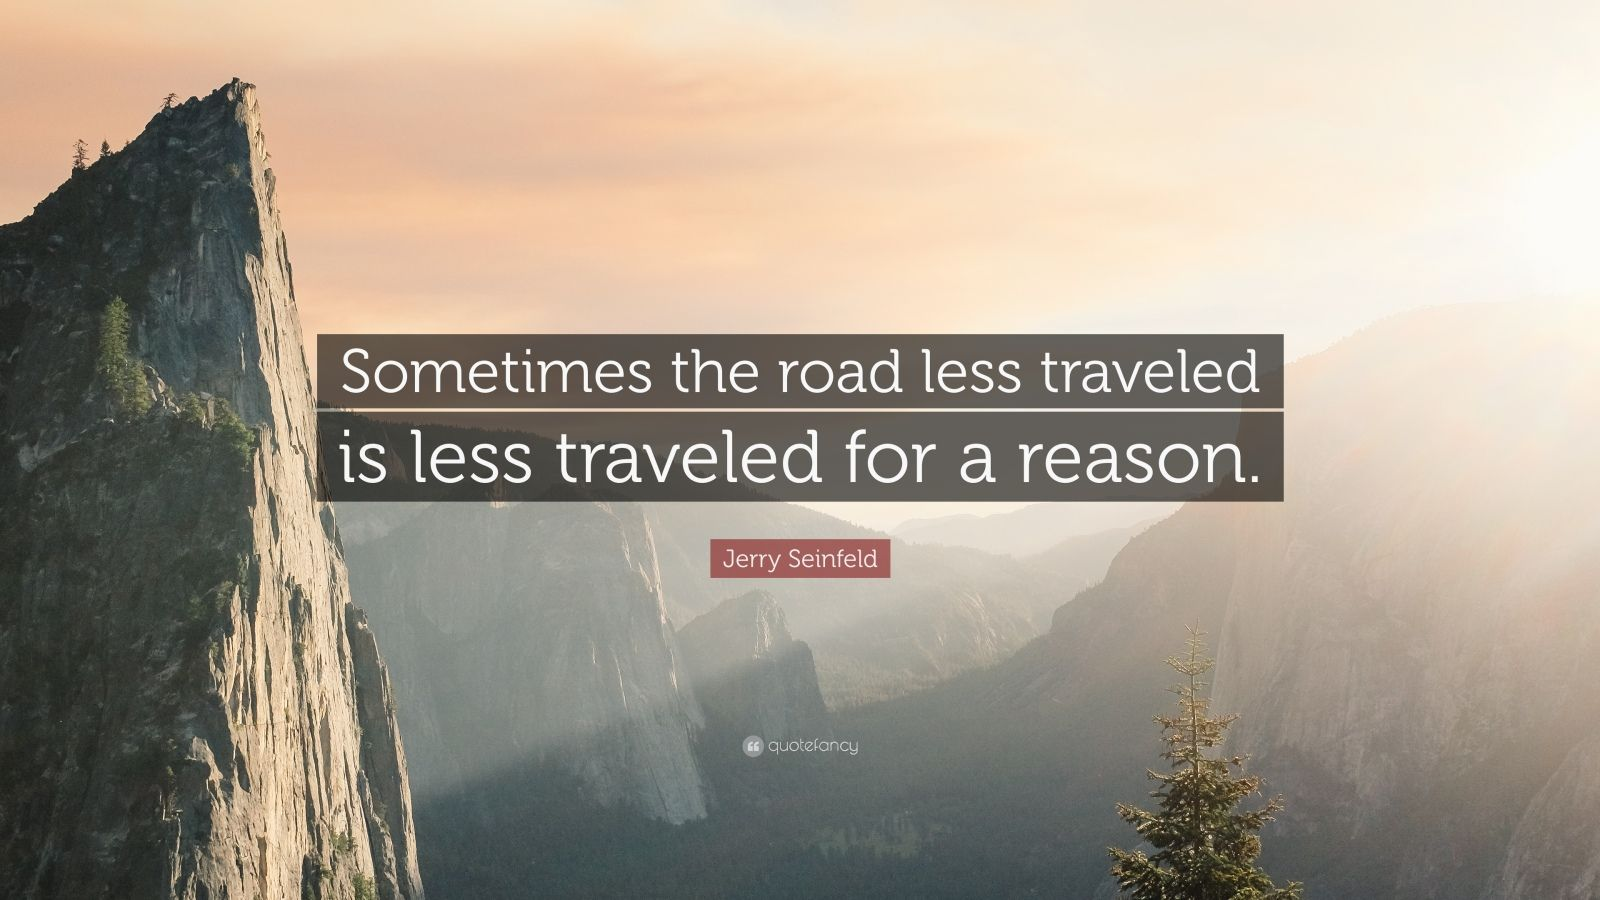 """Sarcastic Quotes: """"Sometimes the road less traveled is less traveled for a reason."""" — Jerry Seinfeld"""